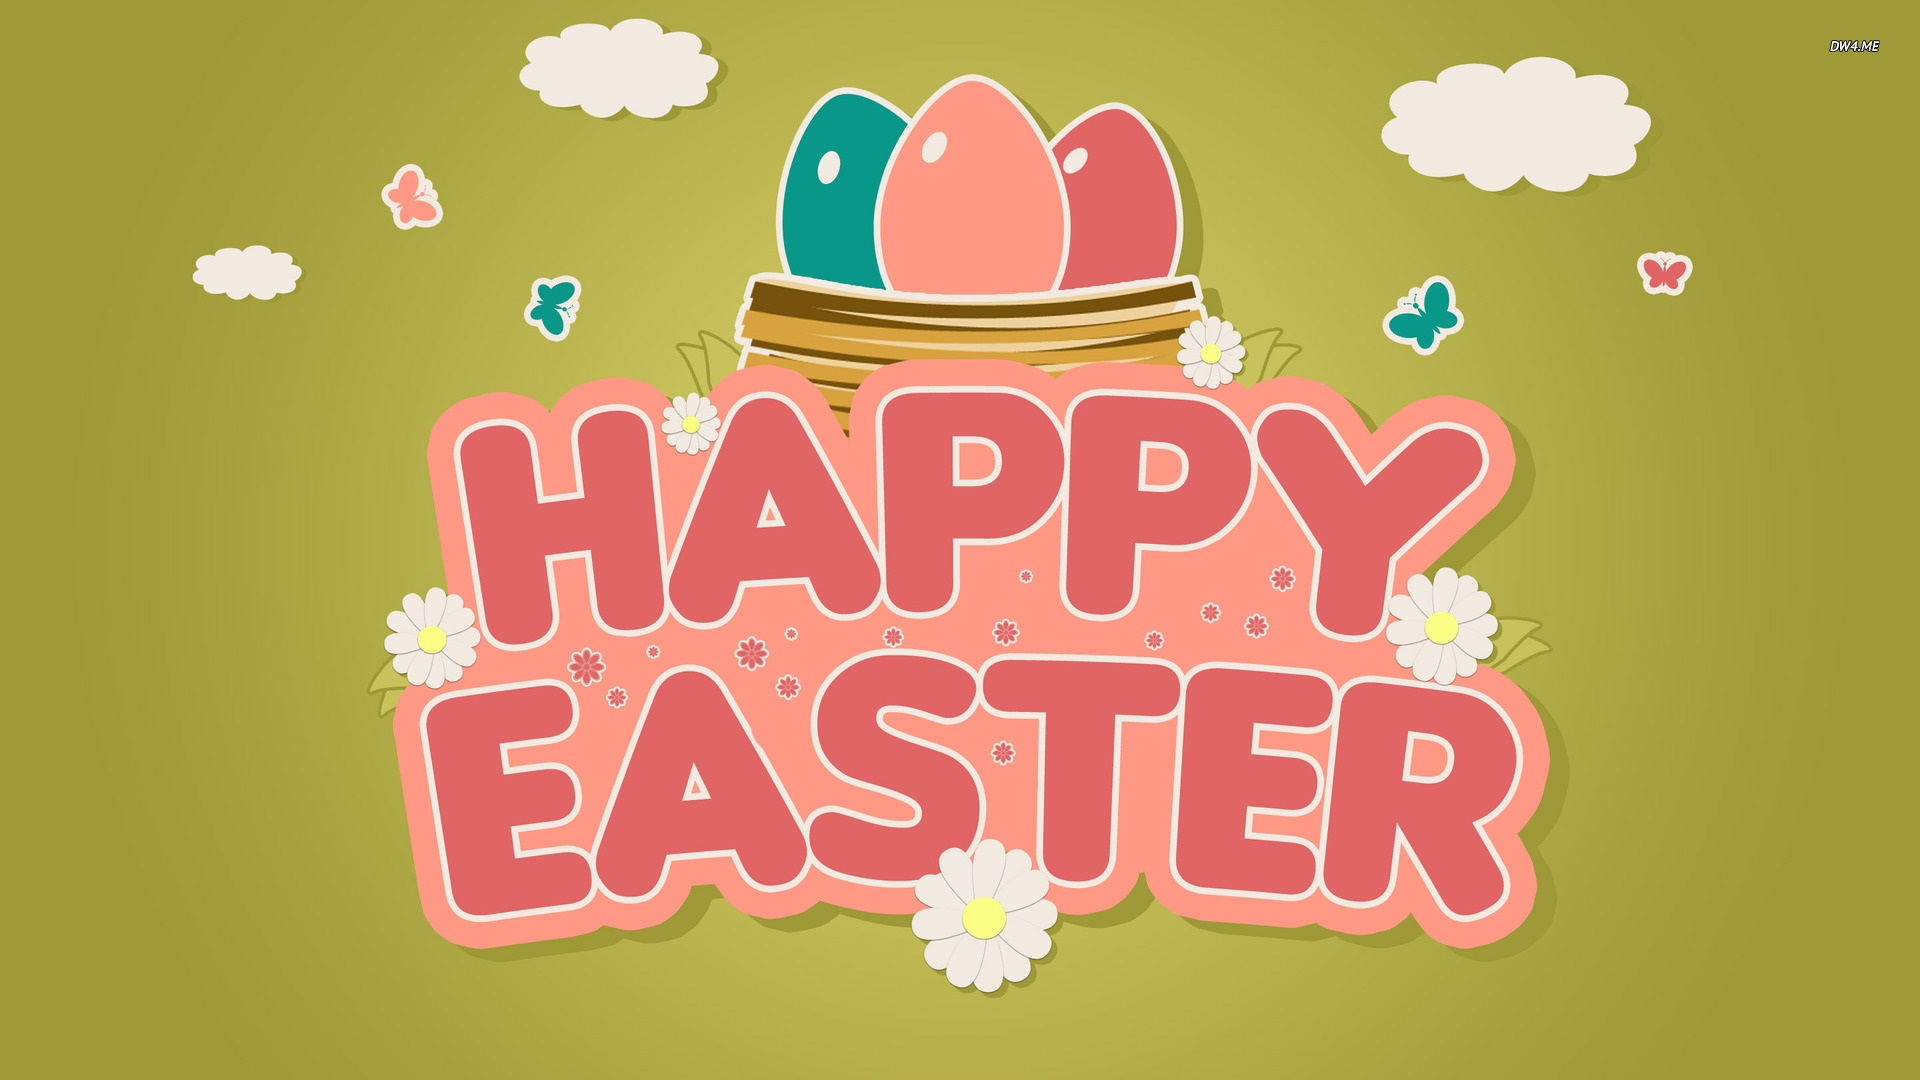 Happy Easter Greetings Messages And Religious Easter Wishes 2018